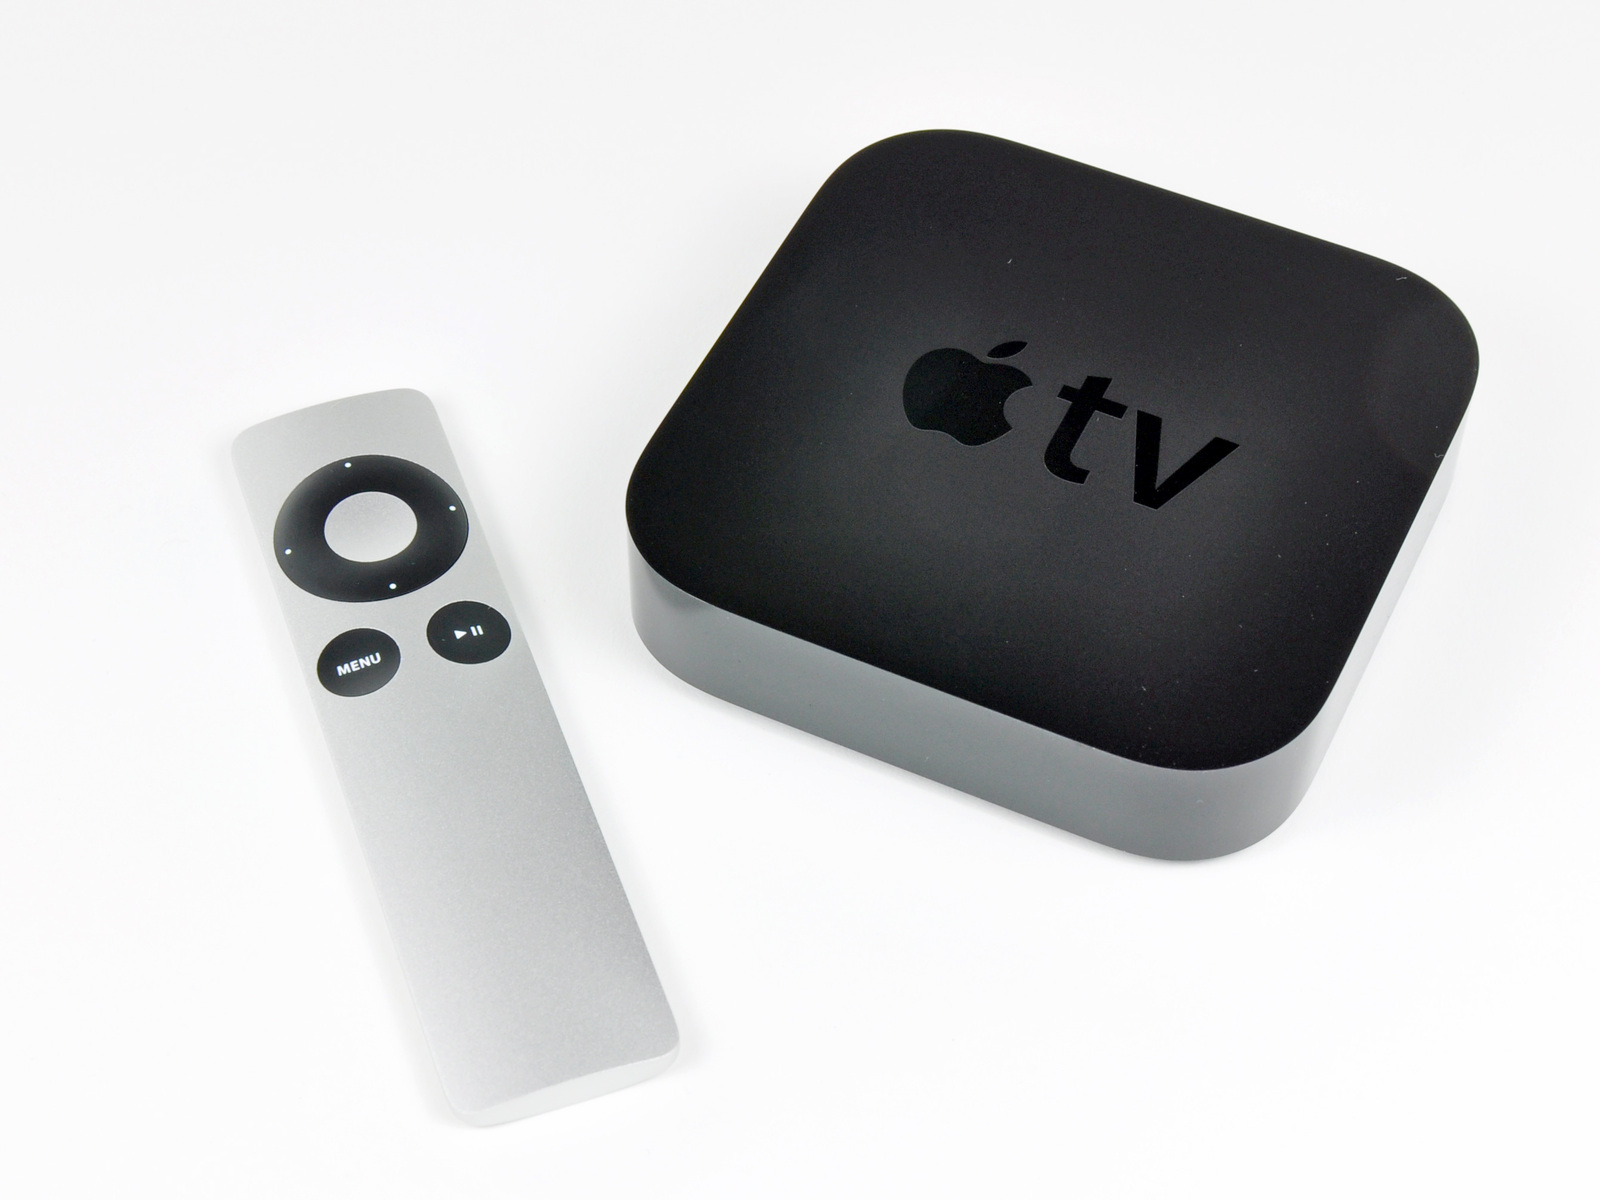 There is movies in the AIR Apple tv